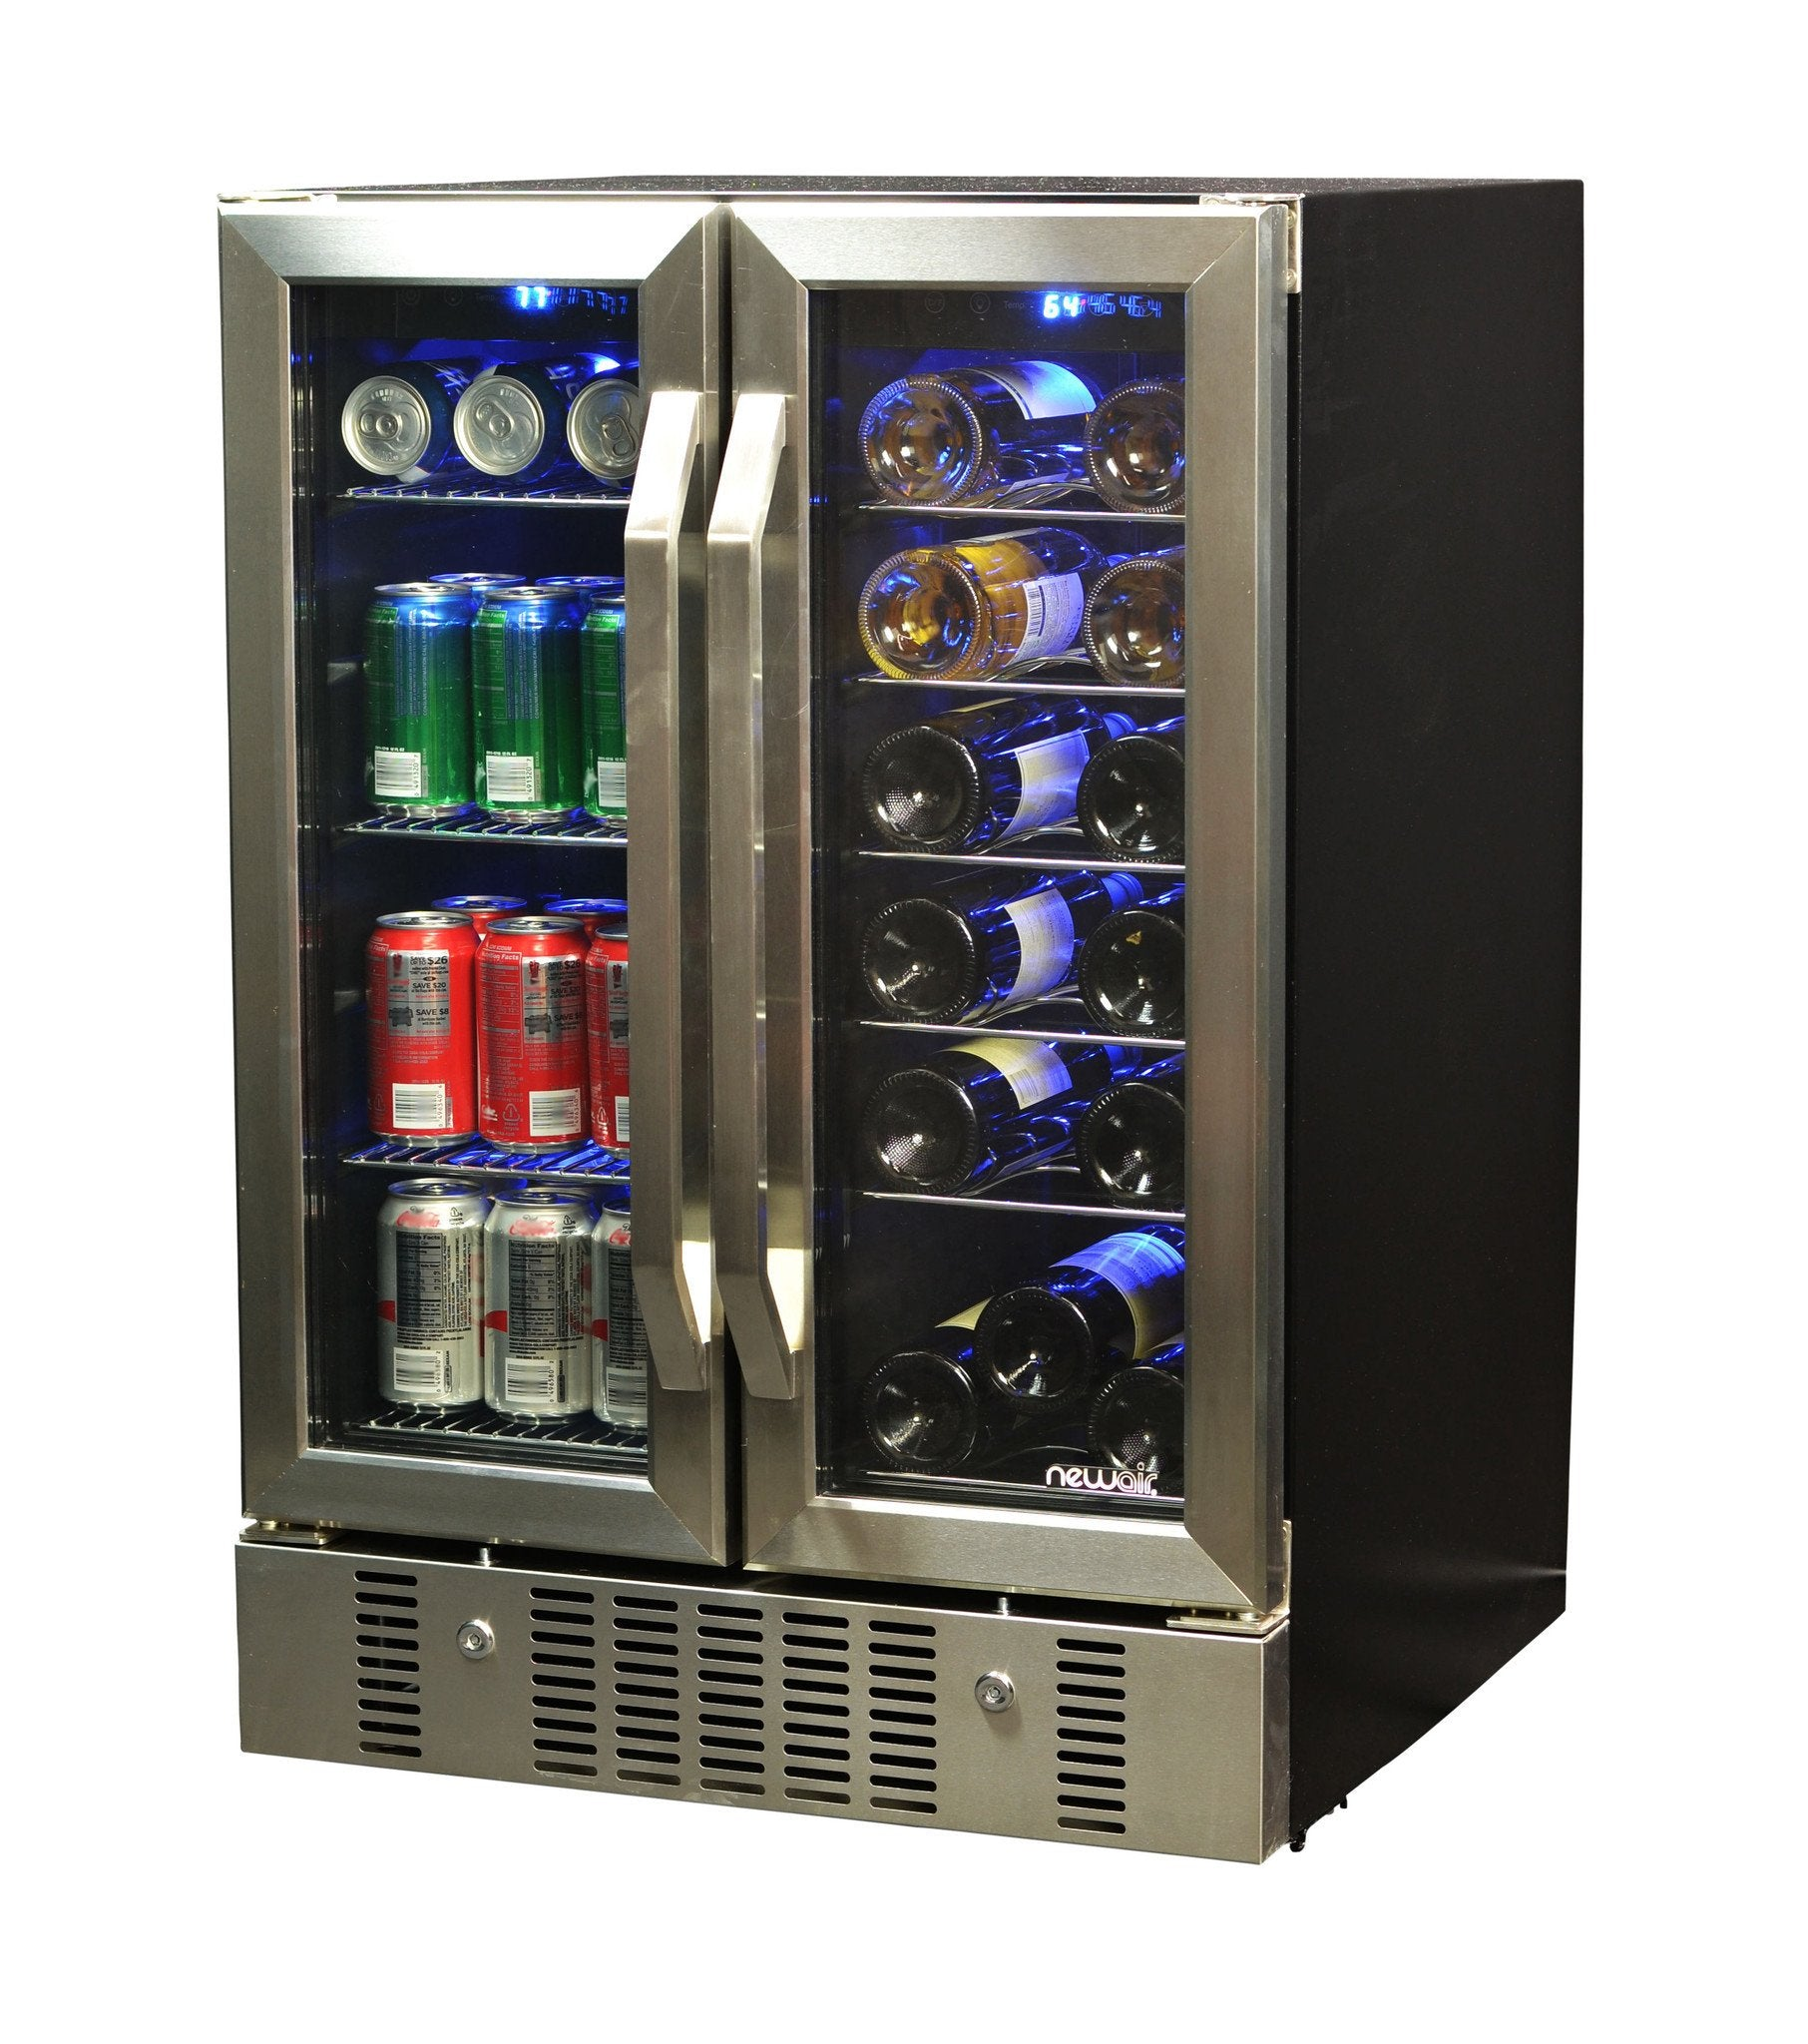 NewAir Dual Zone Wine Cooler and Beverage Cooler AWB-360DB